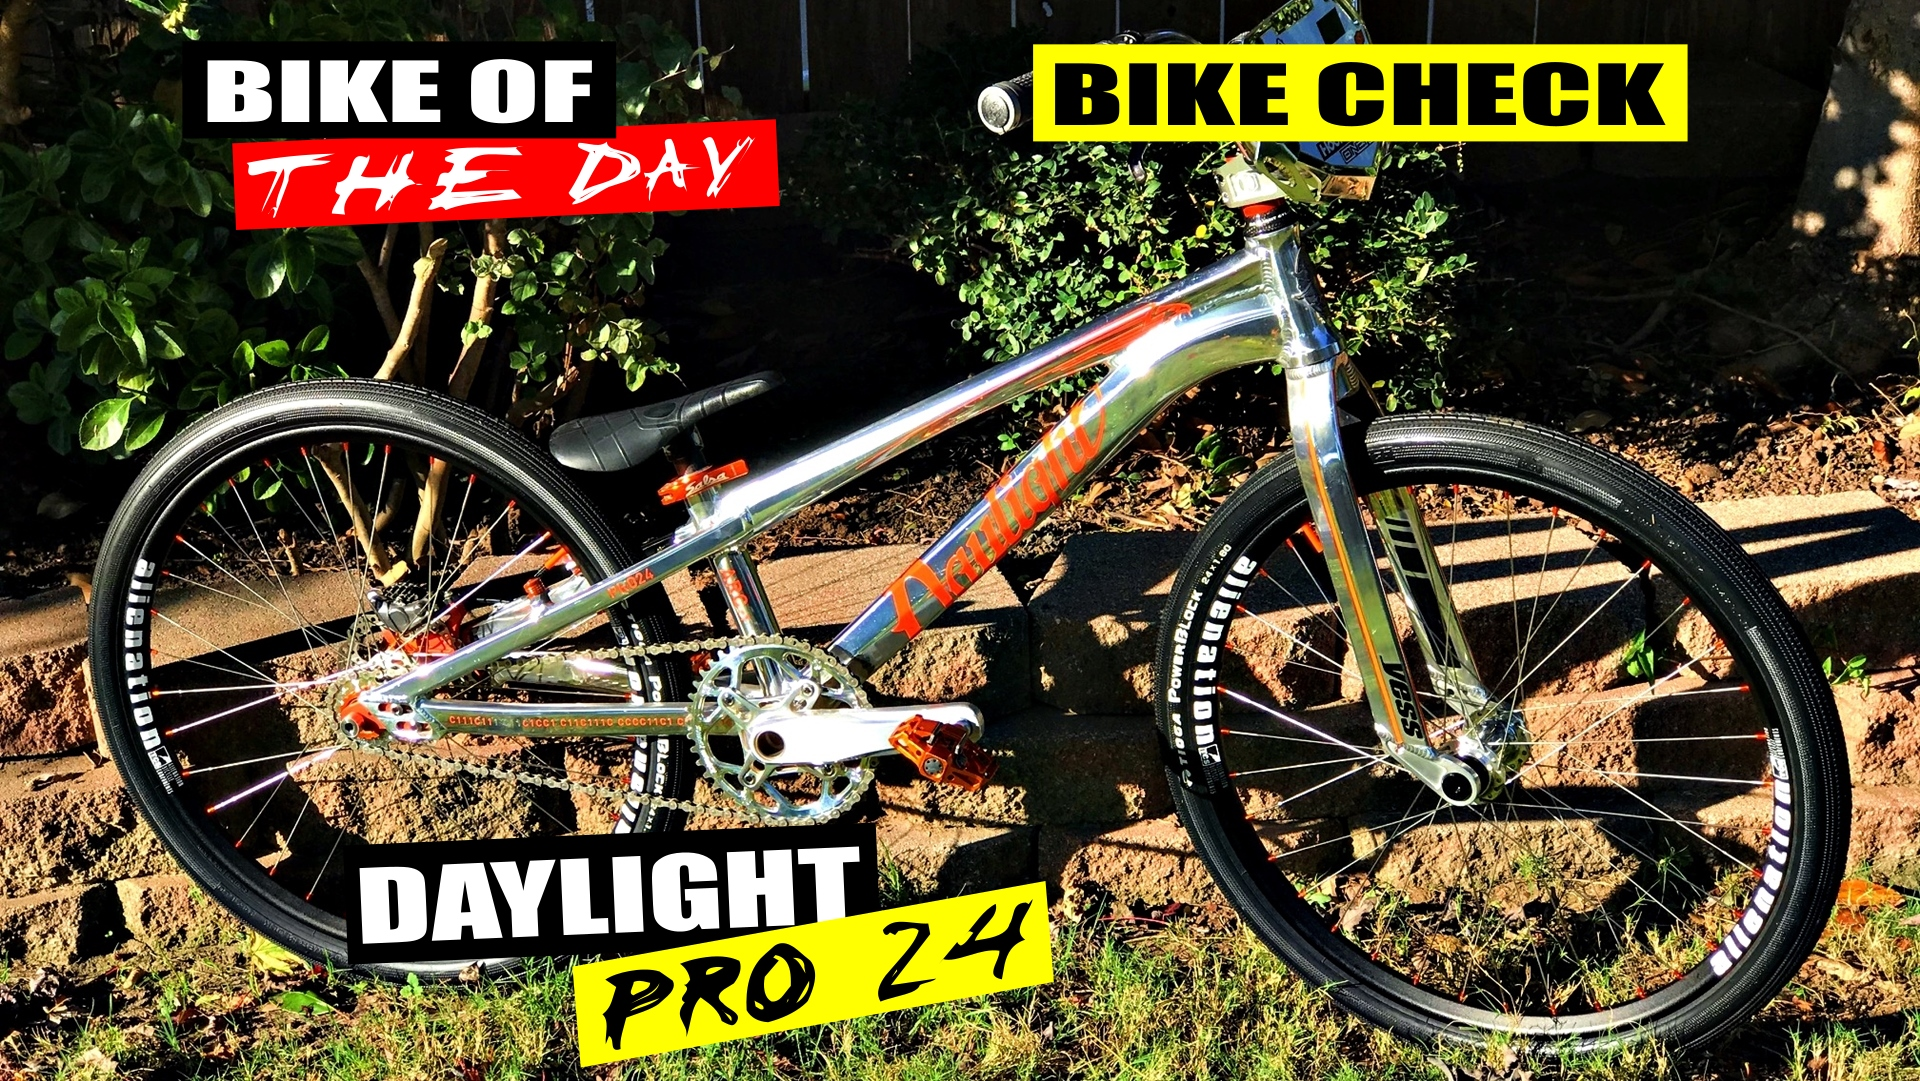 daylight cycle co pro24